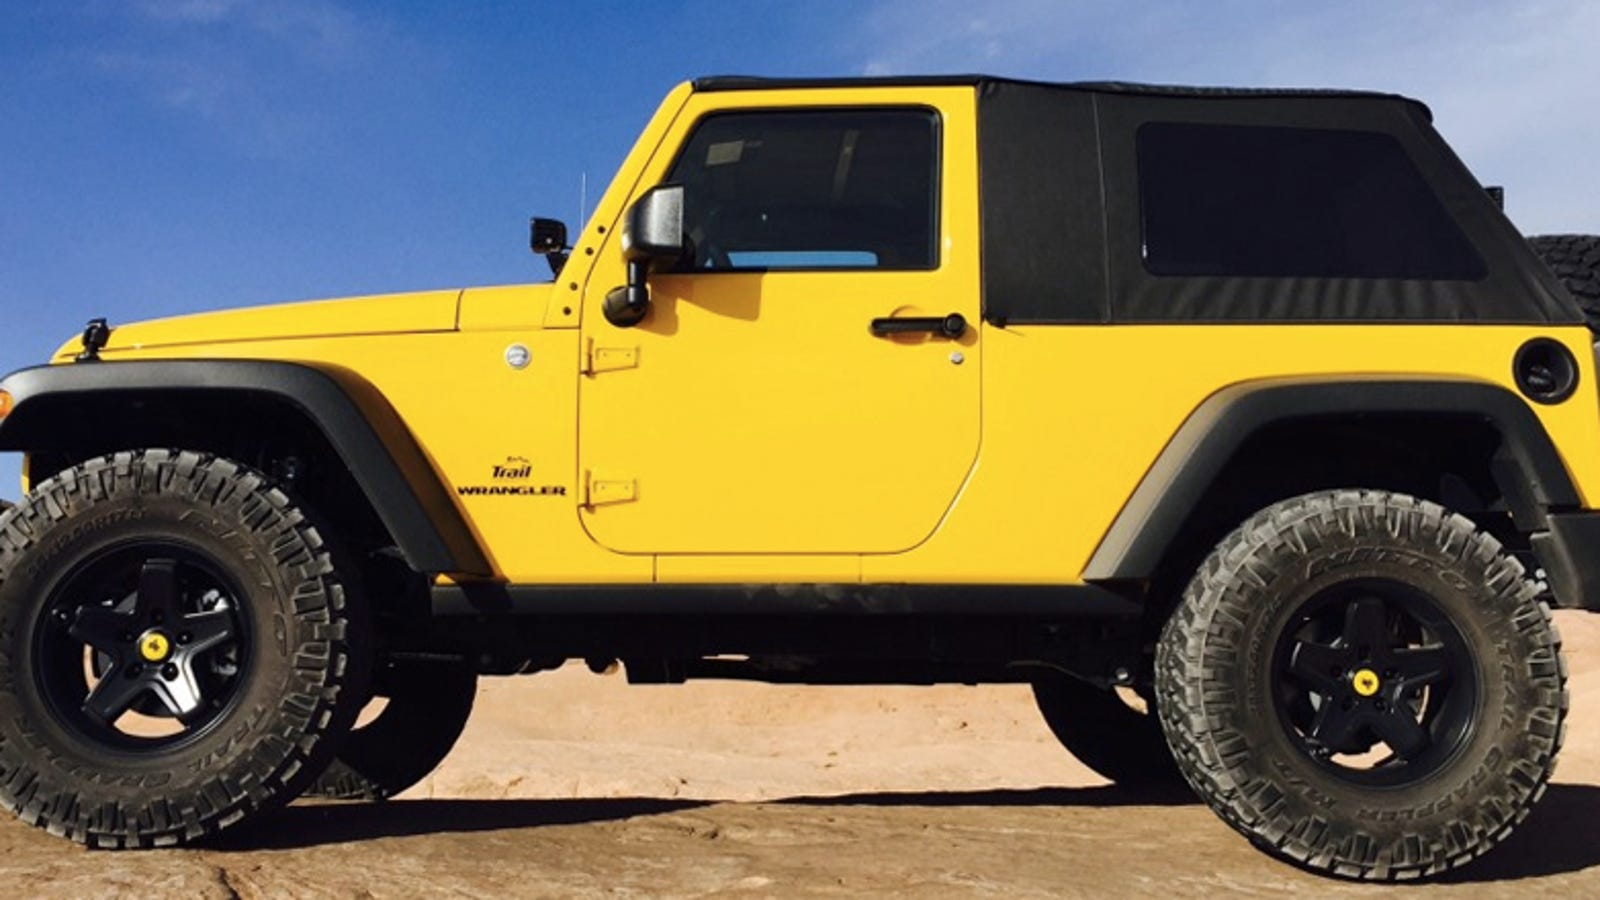 The Rare And Coveted Jeep Wrangler LJ Is Back